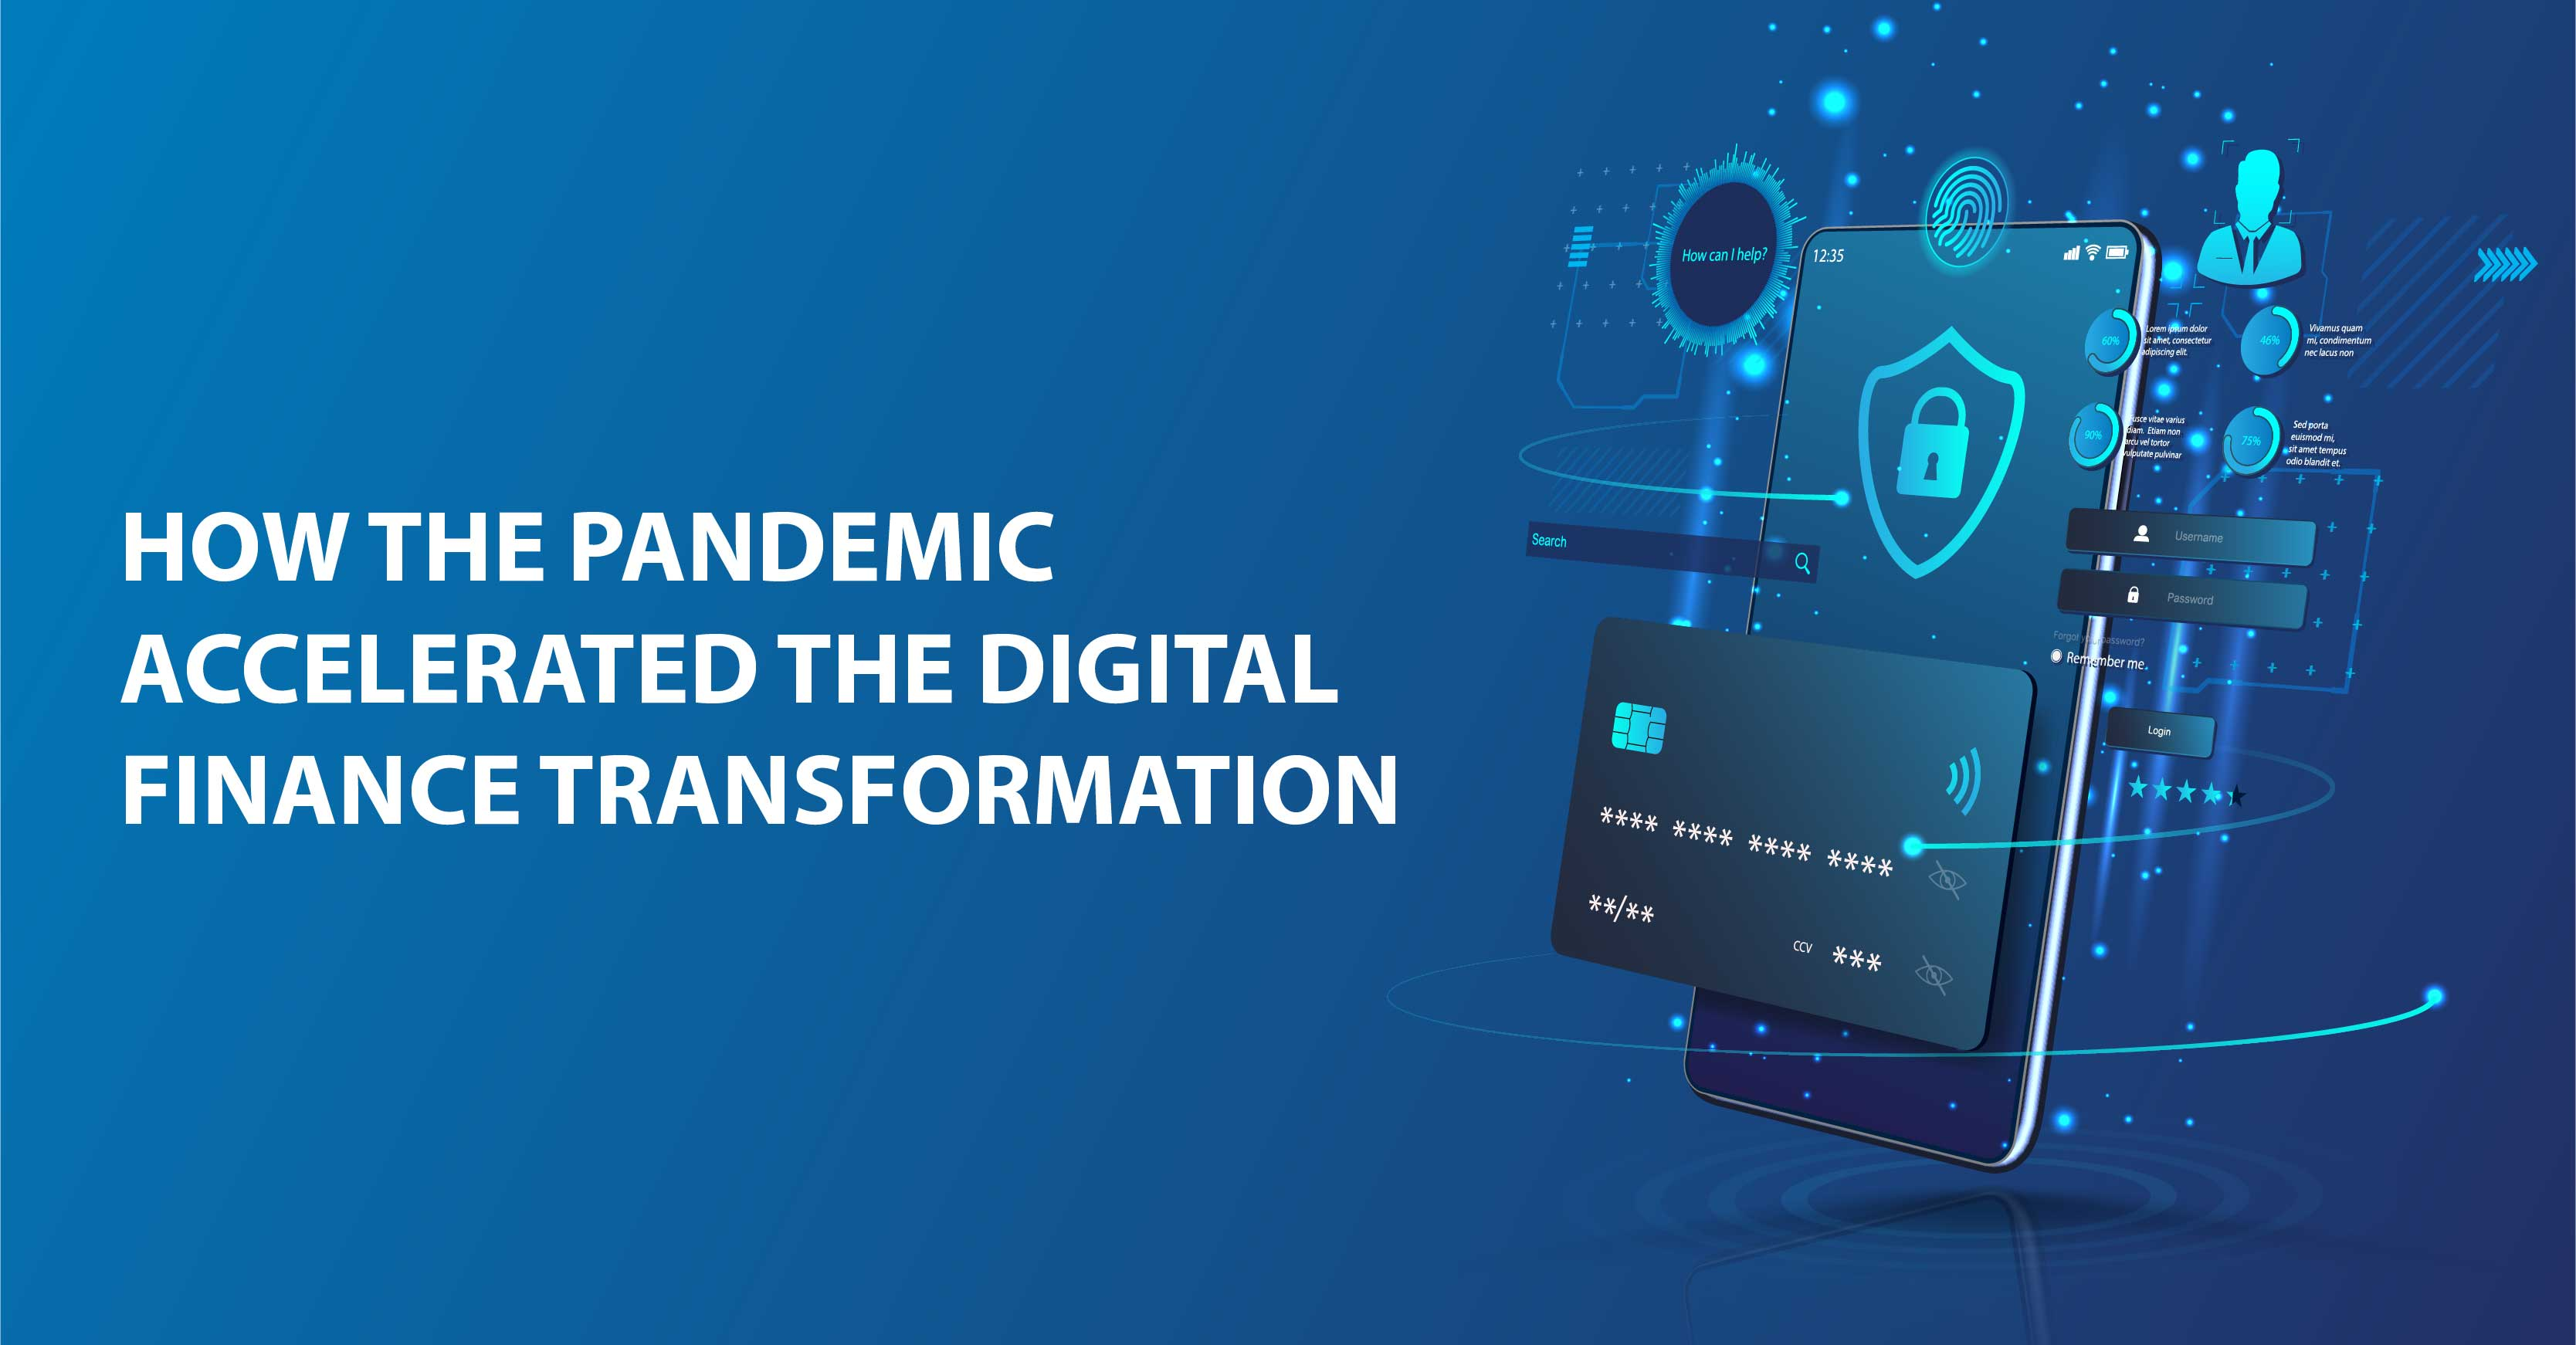 HOW THE PANDEMIC ACCELERATED THE DIGITAL FINANCE TRANSFORMATION